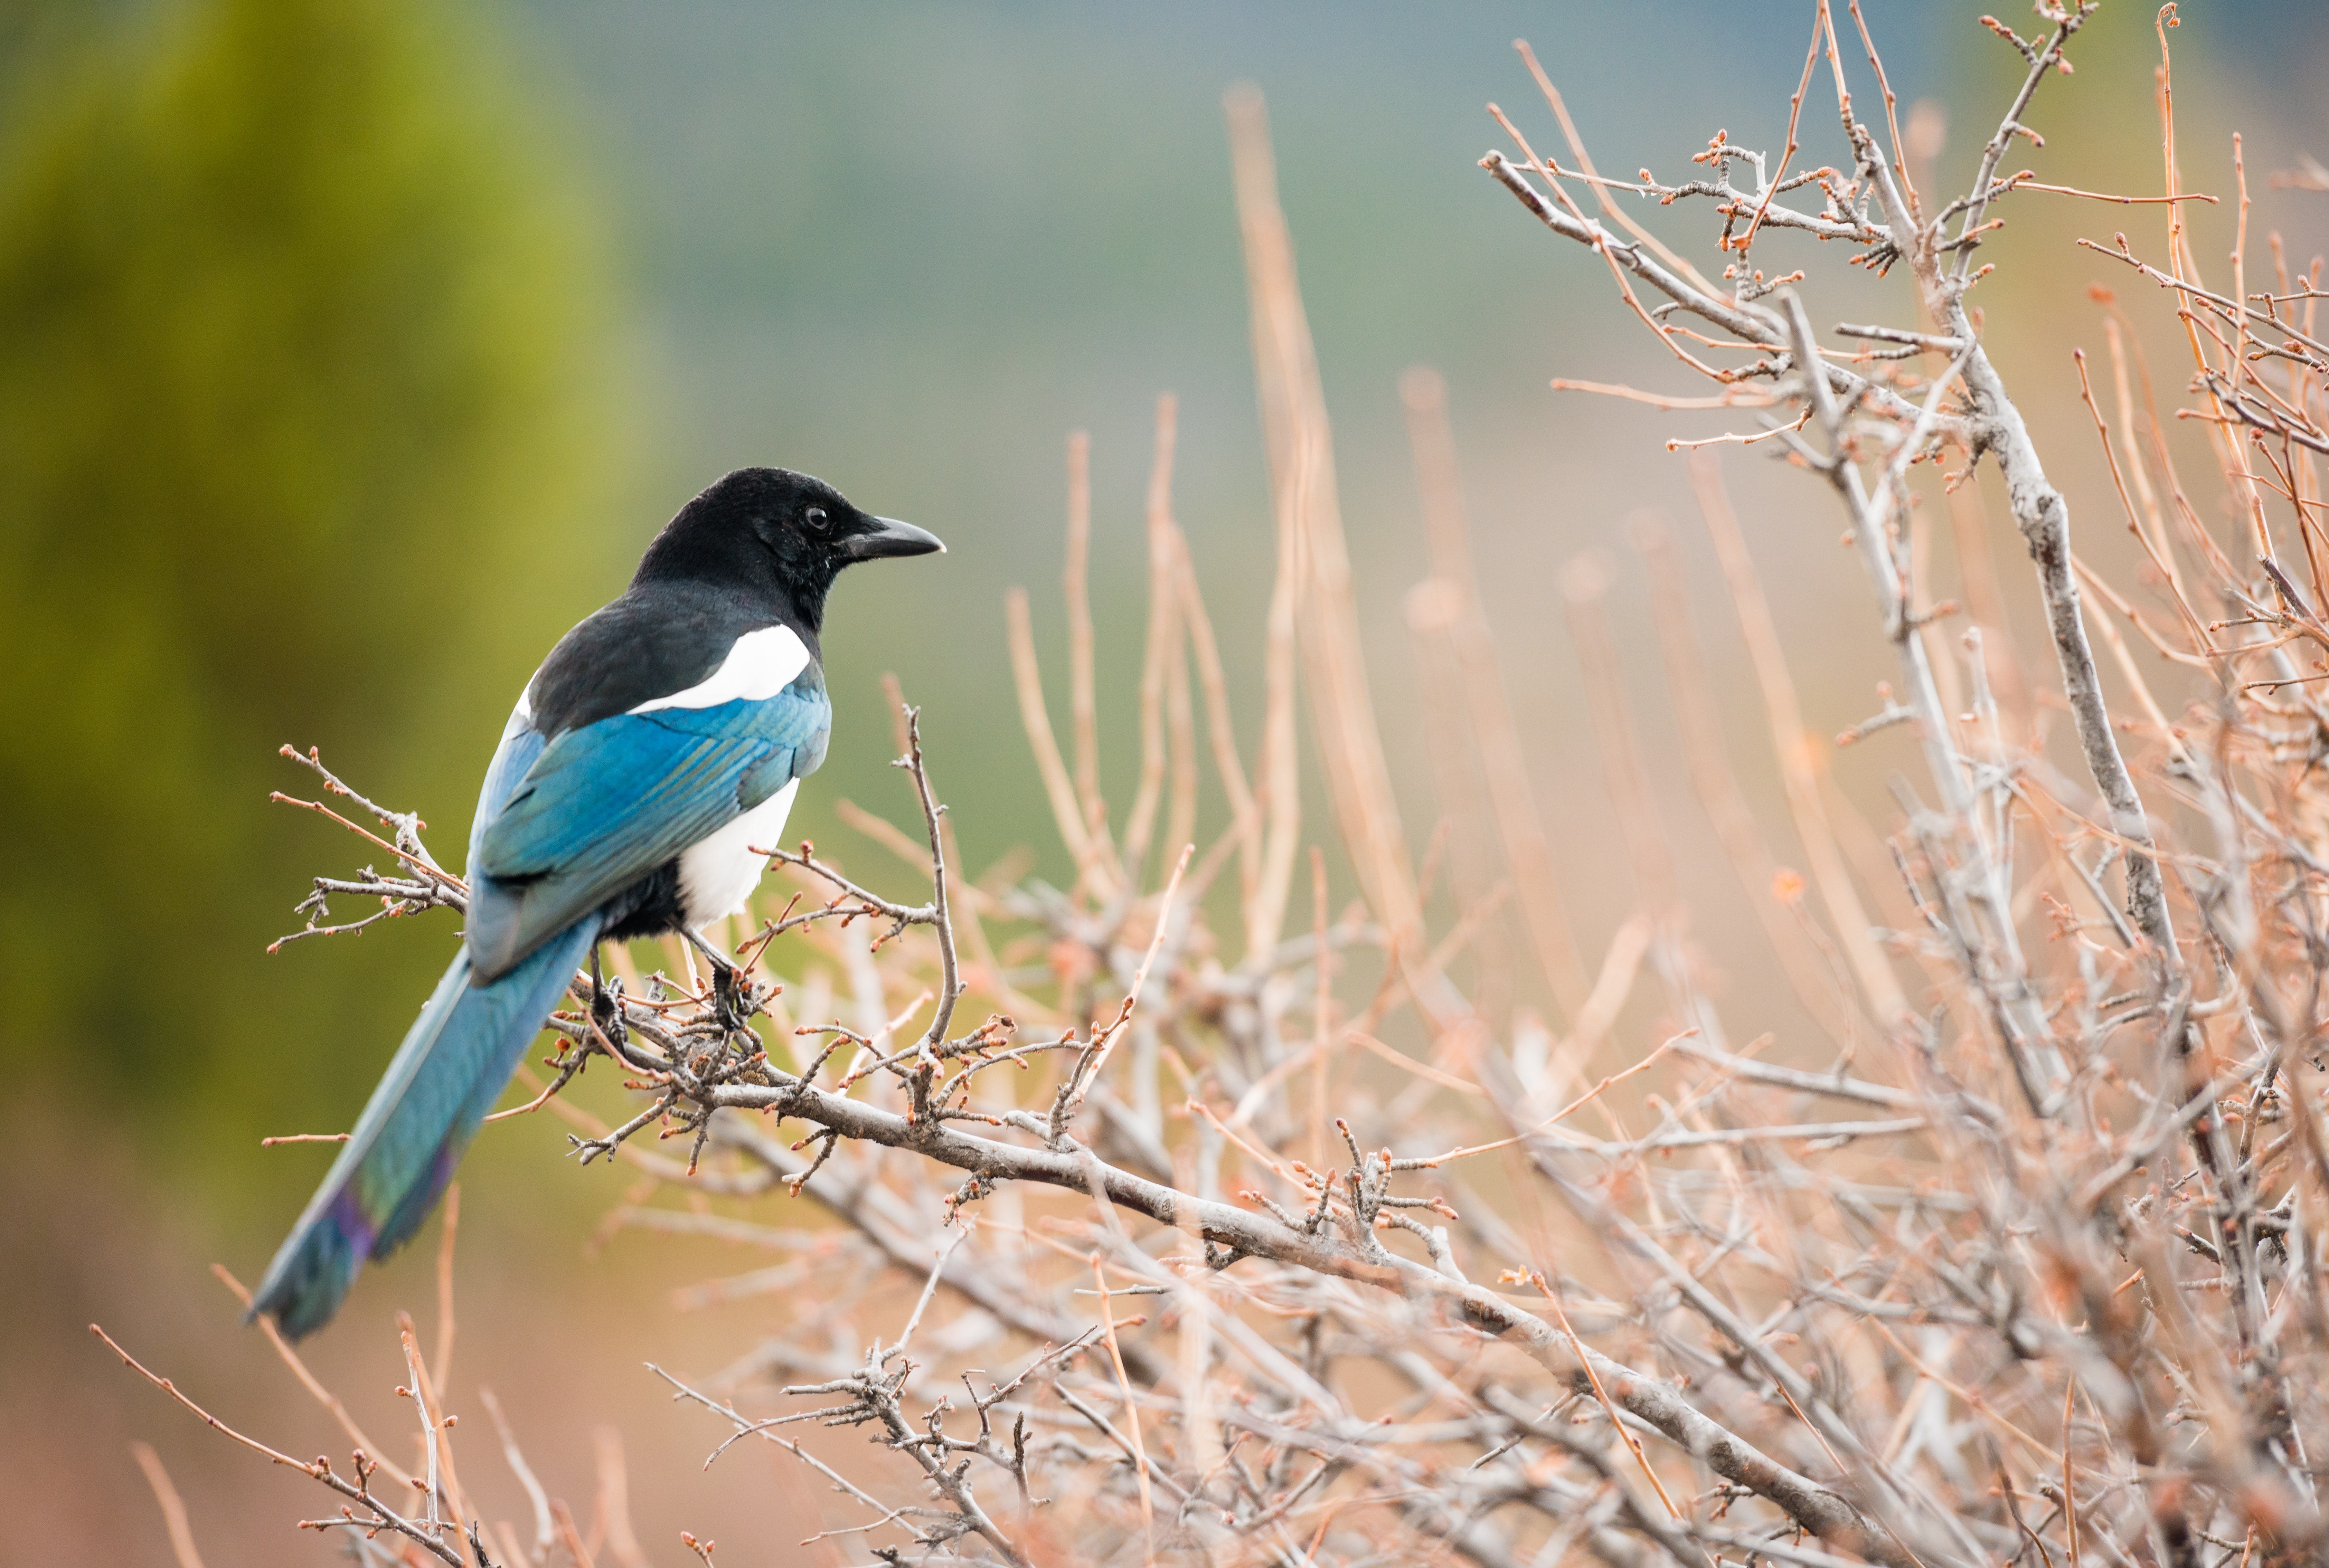 short-beaked black and blue bird perched on brown branch selective focus photography